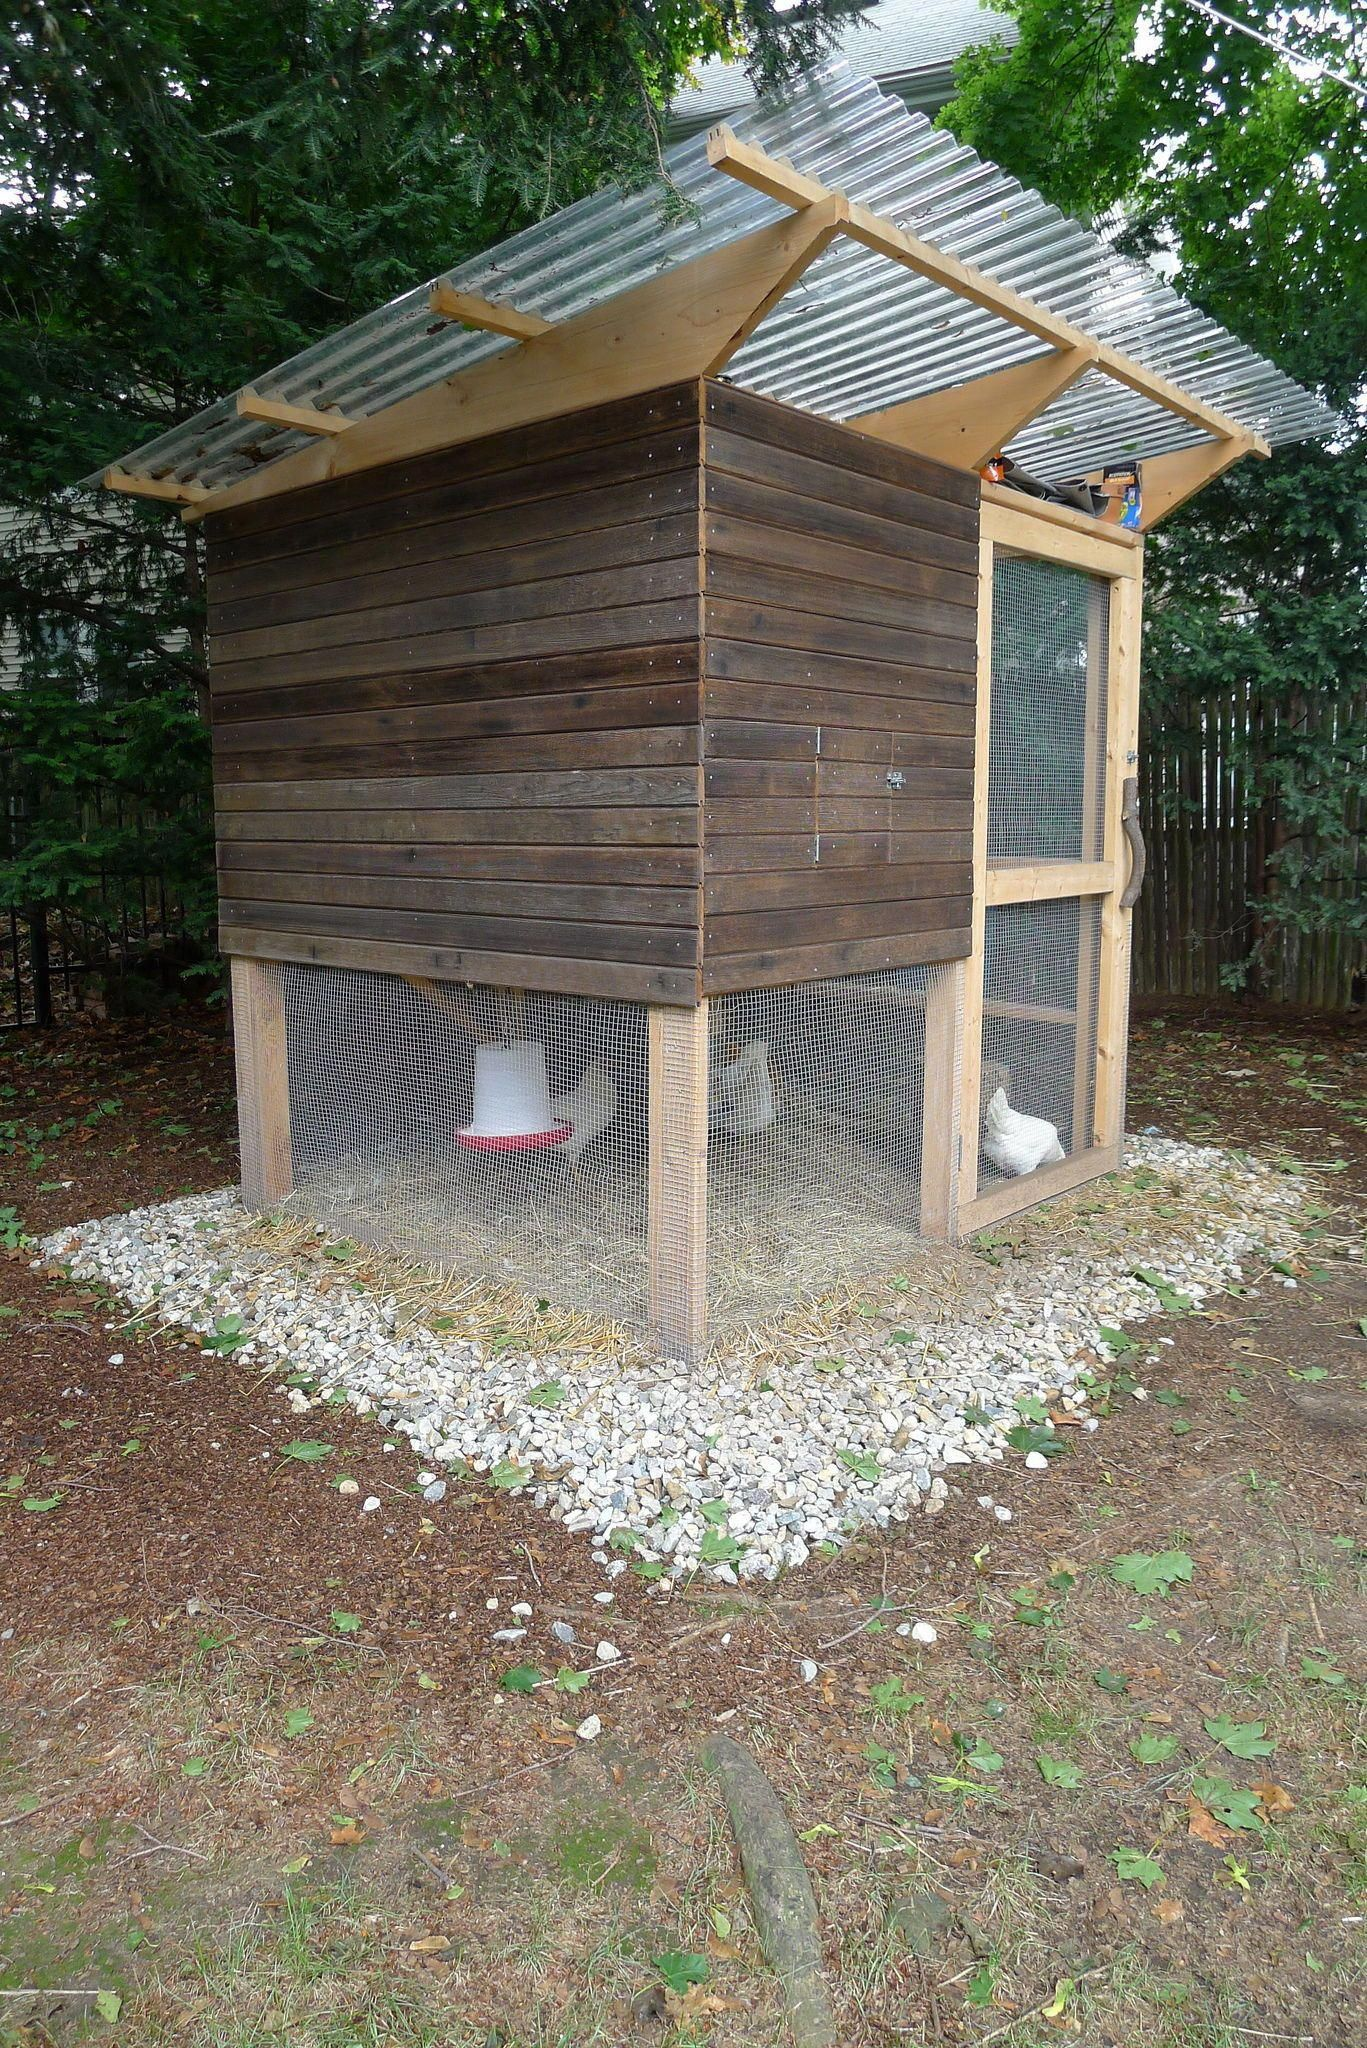 Backyard Chicken Coop Plans Backyard Chicken Coops: 5 Simple Steps On How To Build A Backyard Chicken Coop